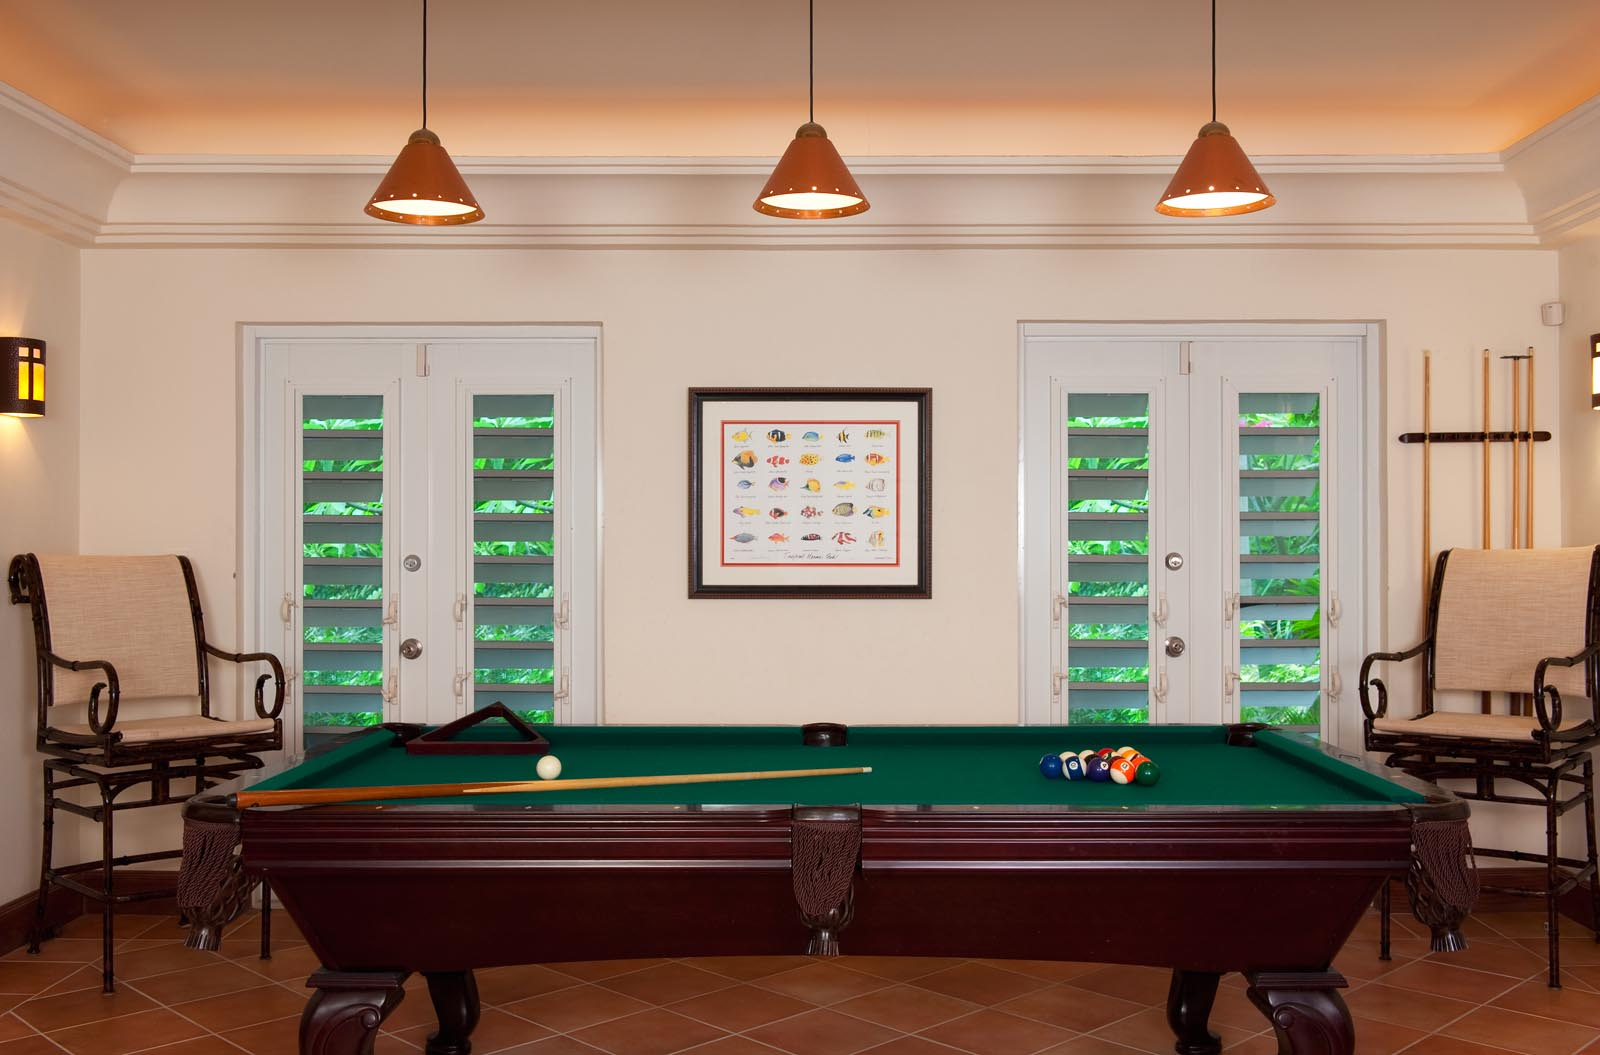 Dawn Beach Villa has a recreation room with a billiard or pool table for your vacation pleasure.